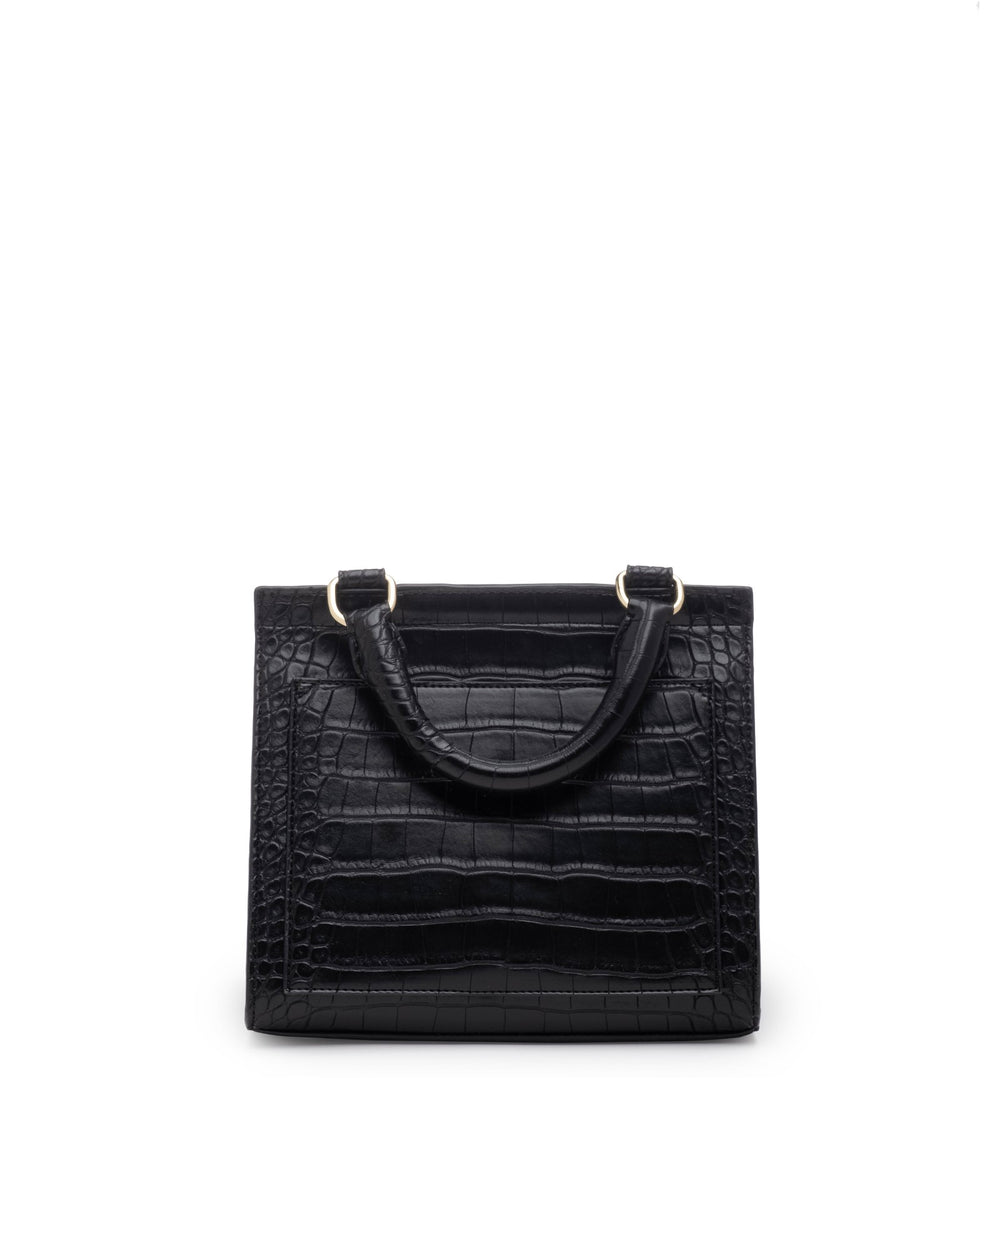 color:Black Faux Crocodile